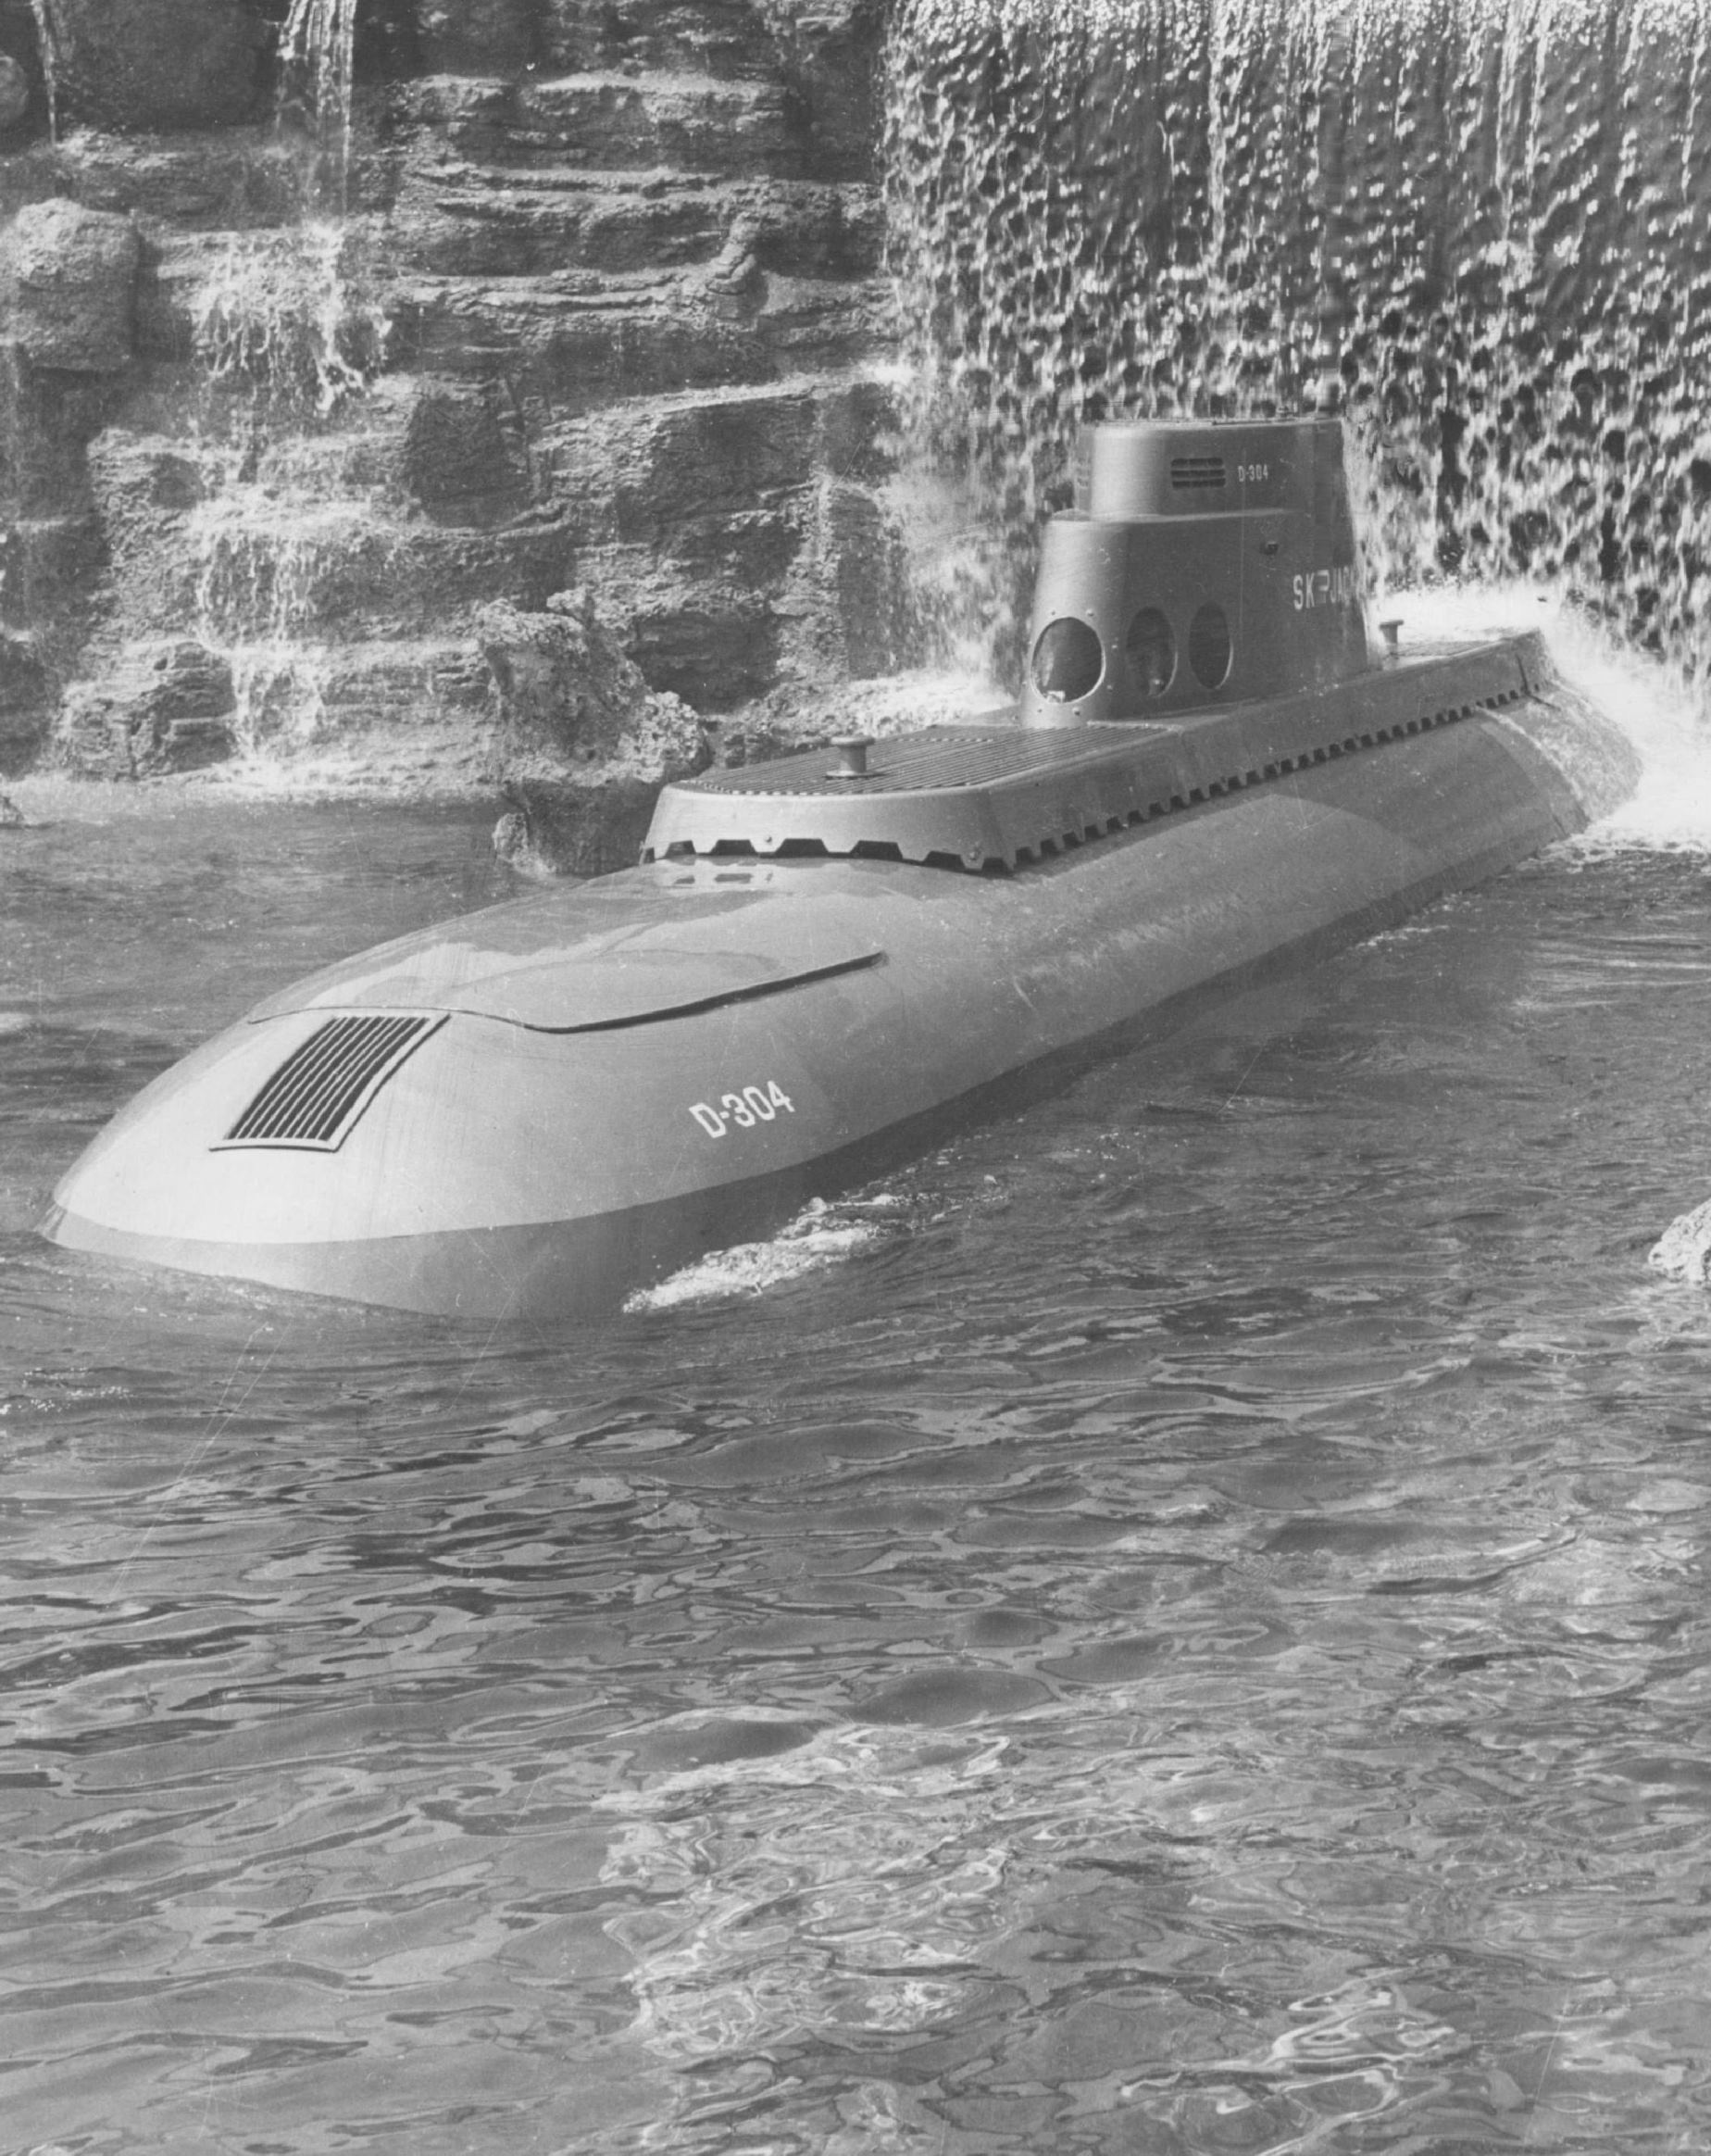 Slide 16 of 33: APR 8 1960; To Perform for Carriers; The 'Skipjack,' one of eight Disneyland Submarines named after America's nuclear powered undersea fleet, breaks through a cascading waterfall after its journey through 'liquid' space at the California amusement center